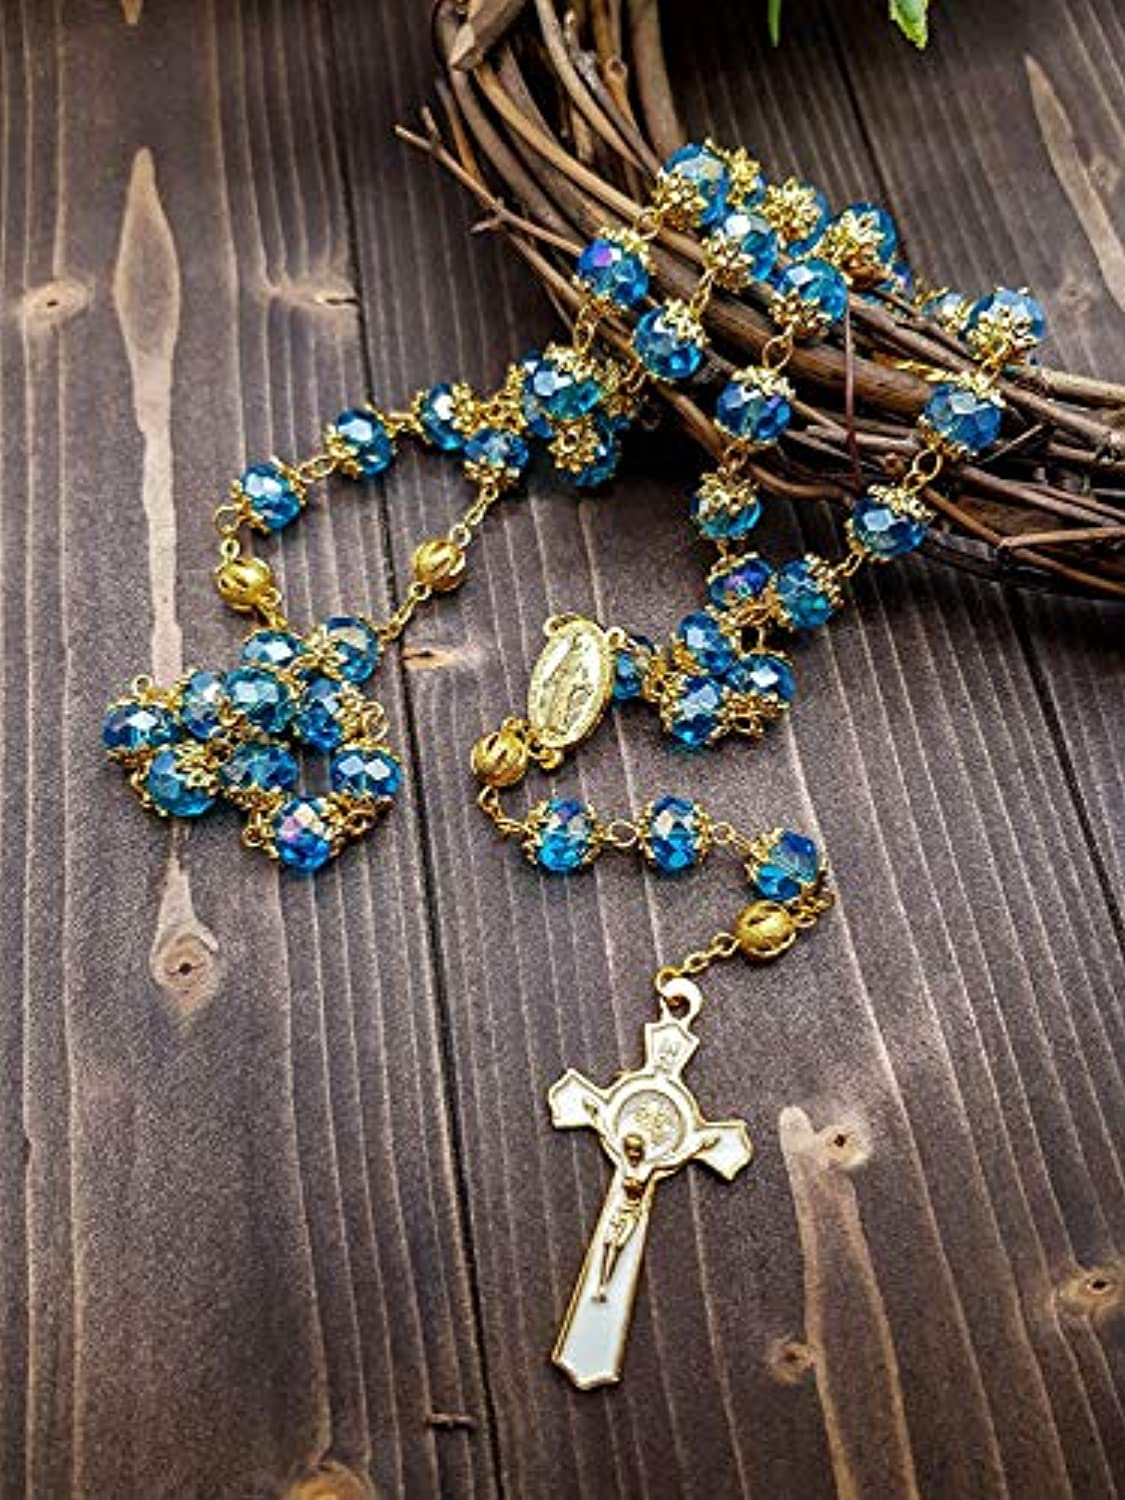 Deep Blue Crystal Beads Rosary St Benedict Beaded Necklace Gold Plated 10mm Catholic Rosary Beads Miraculous Medal /& San Benito Cross